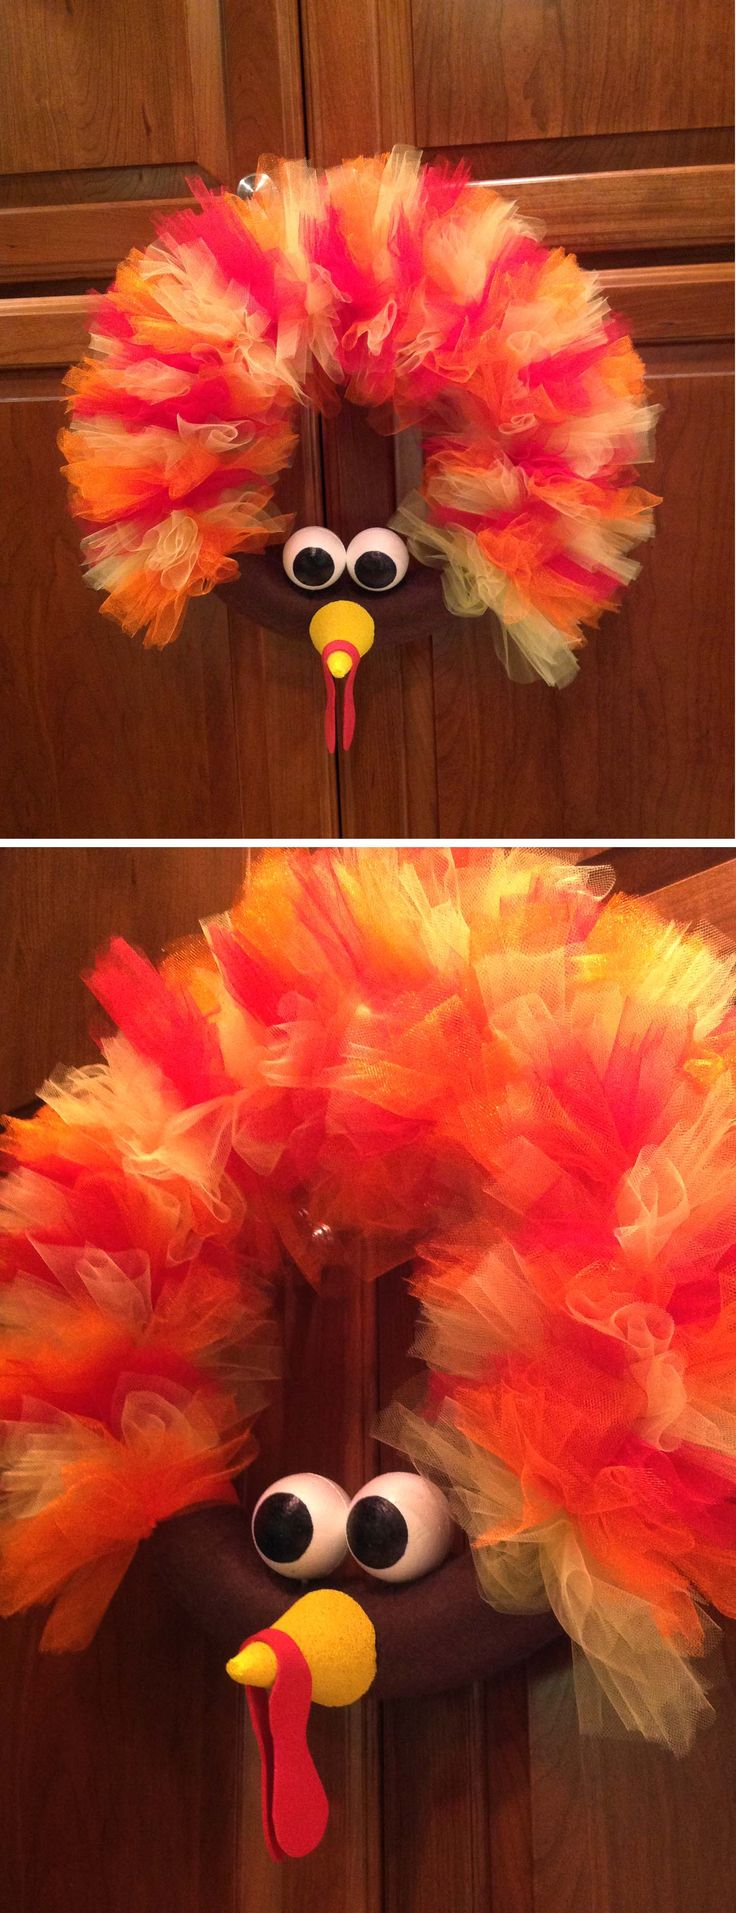 Tom the Turkey Wreath - Step by Step Instructions | Wreath by babyrabies.com